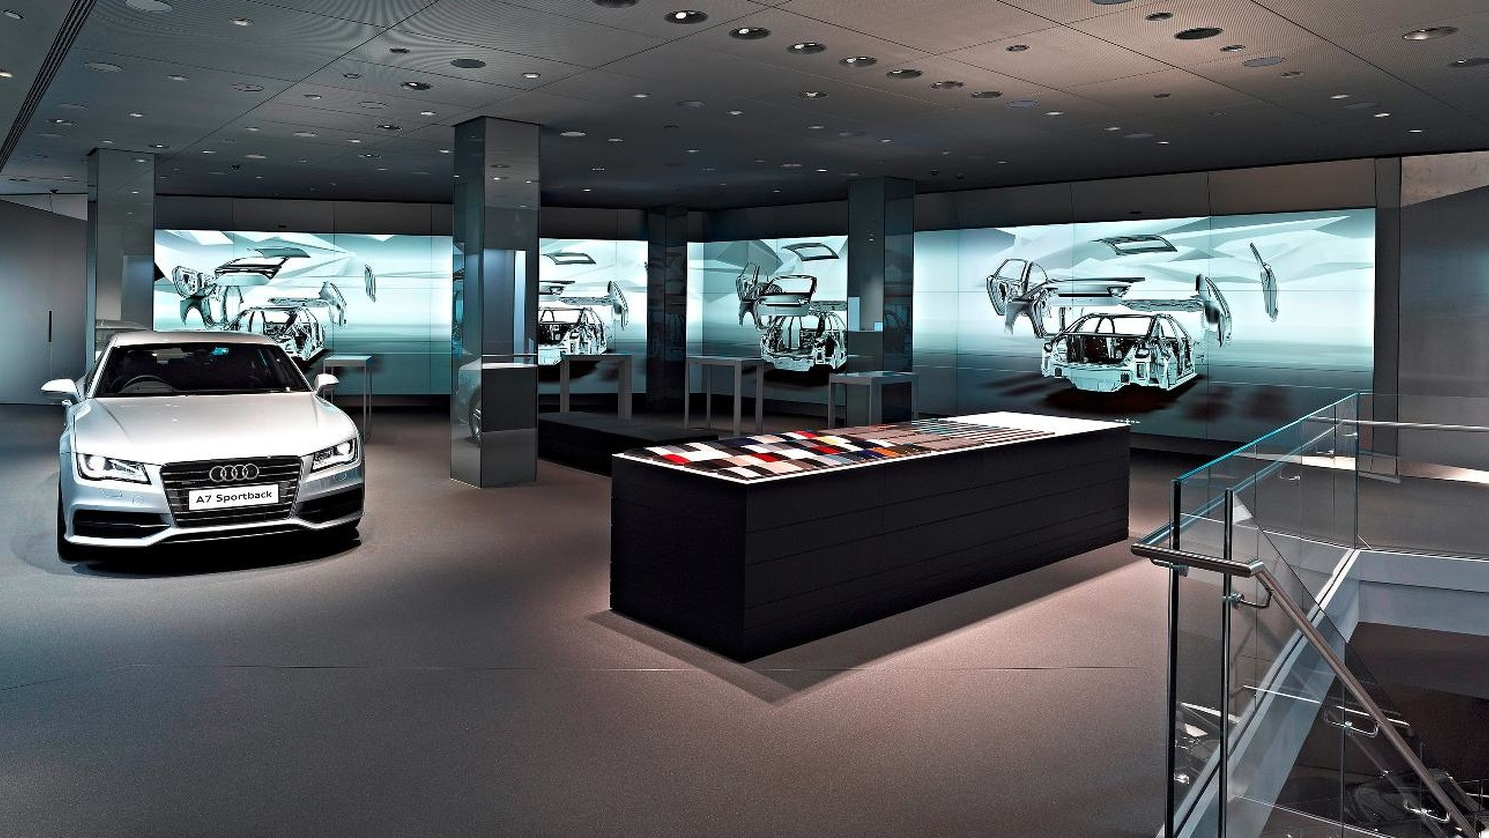 Audi City, opening in Central London